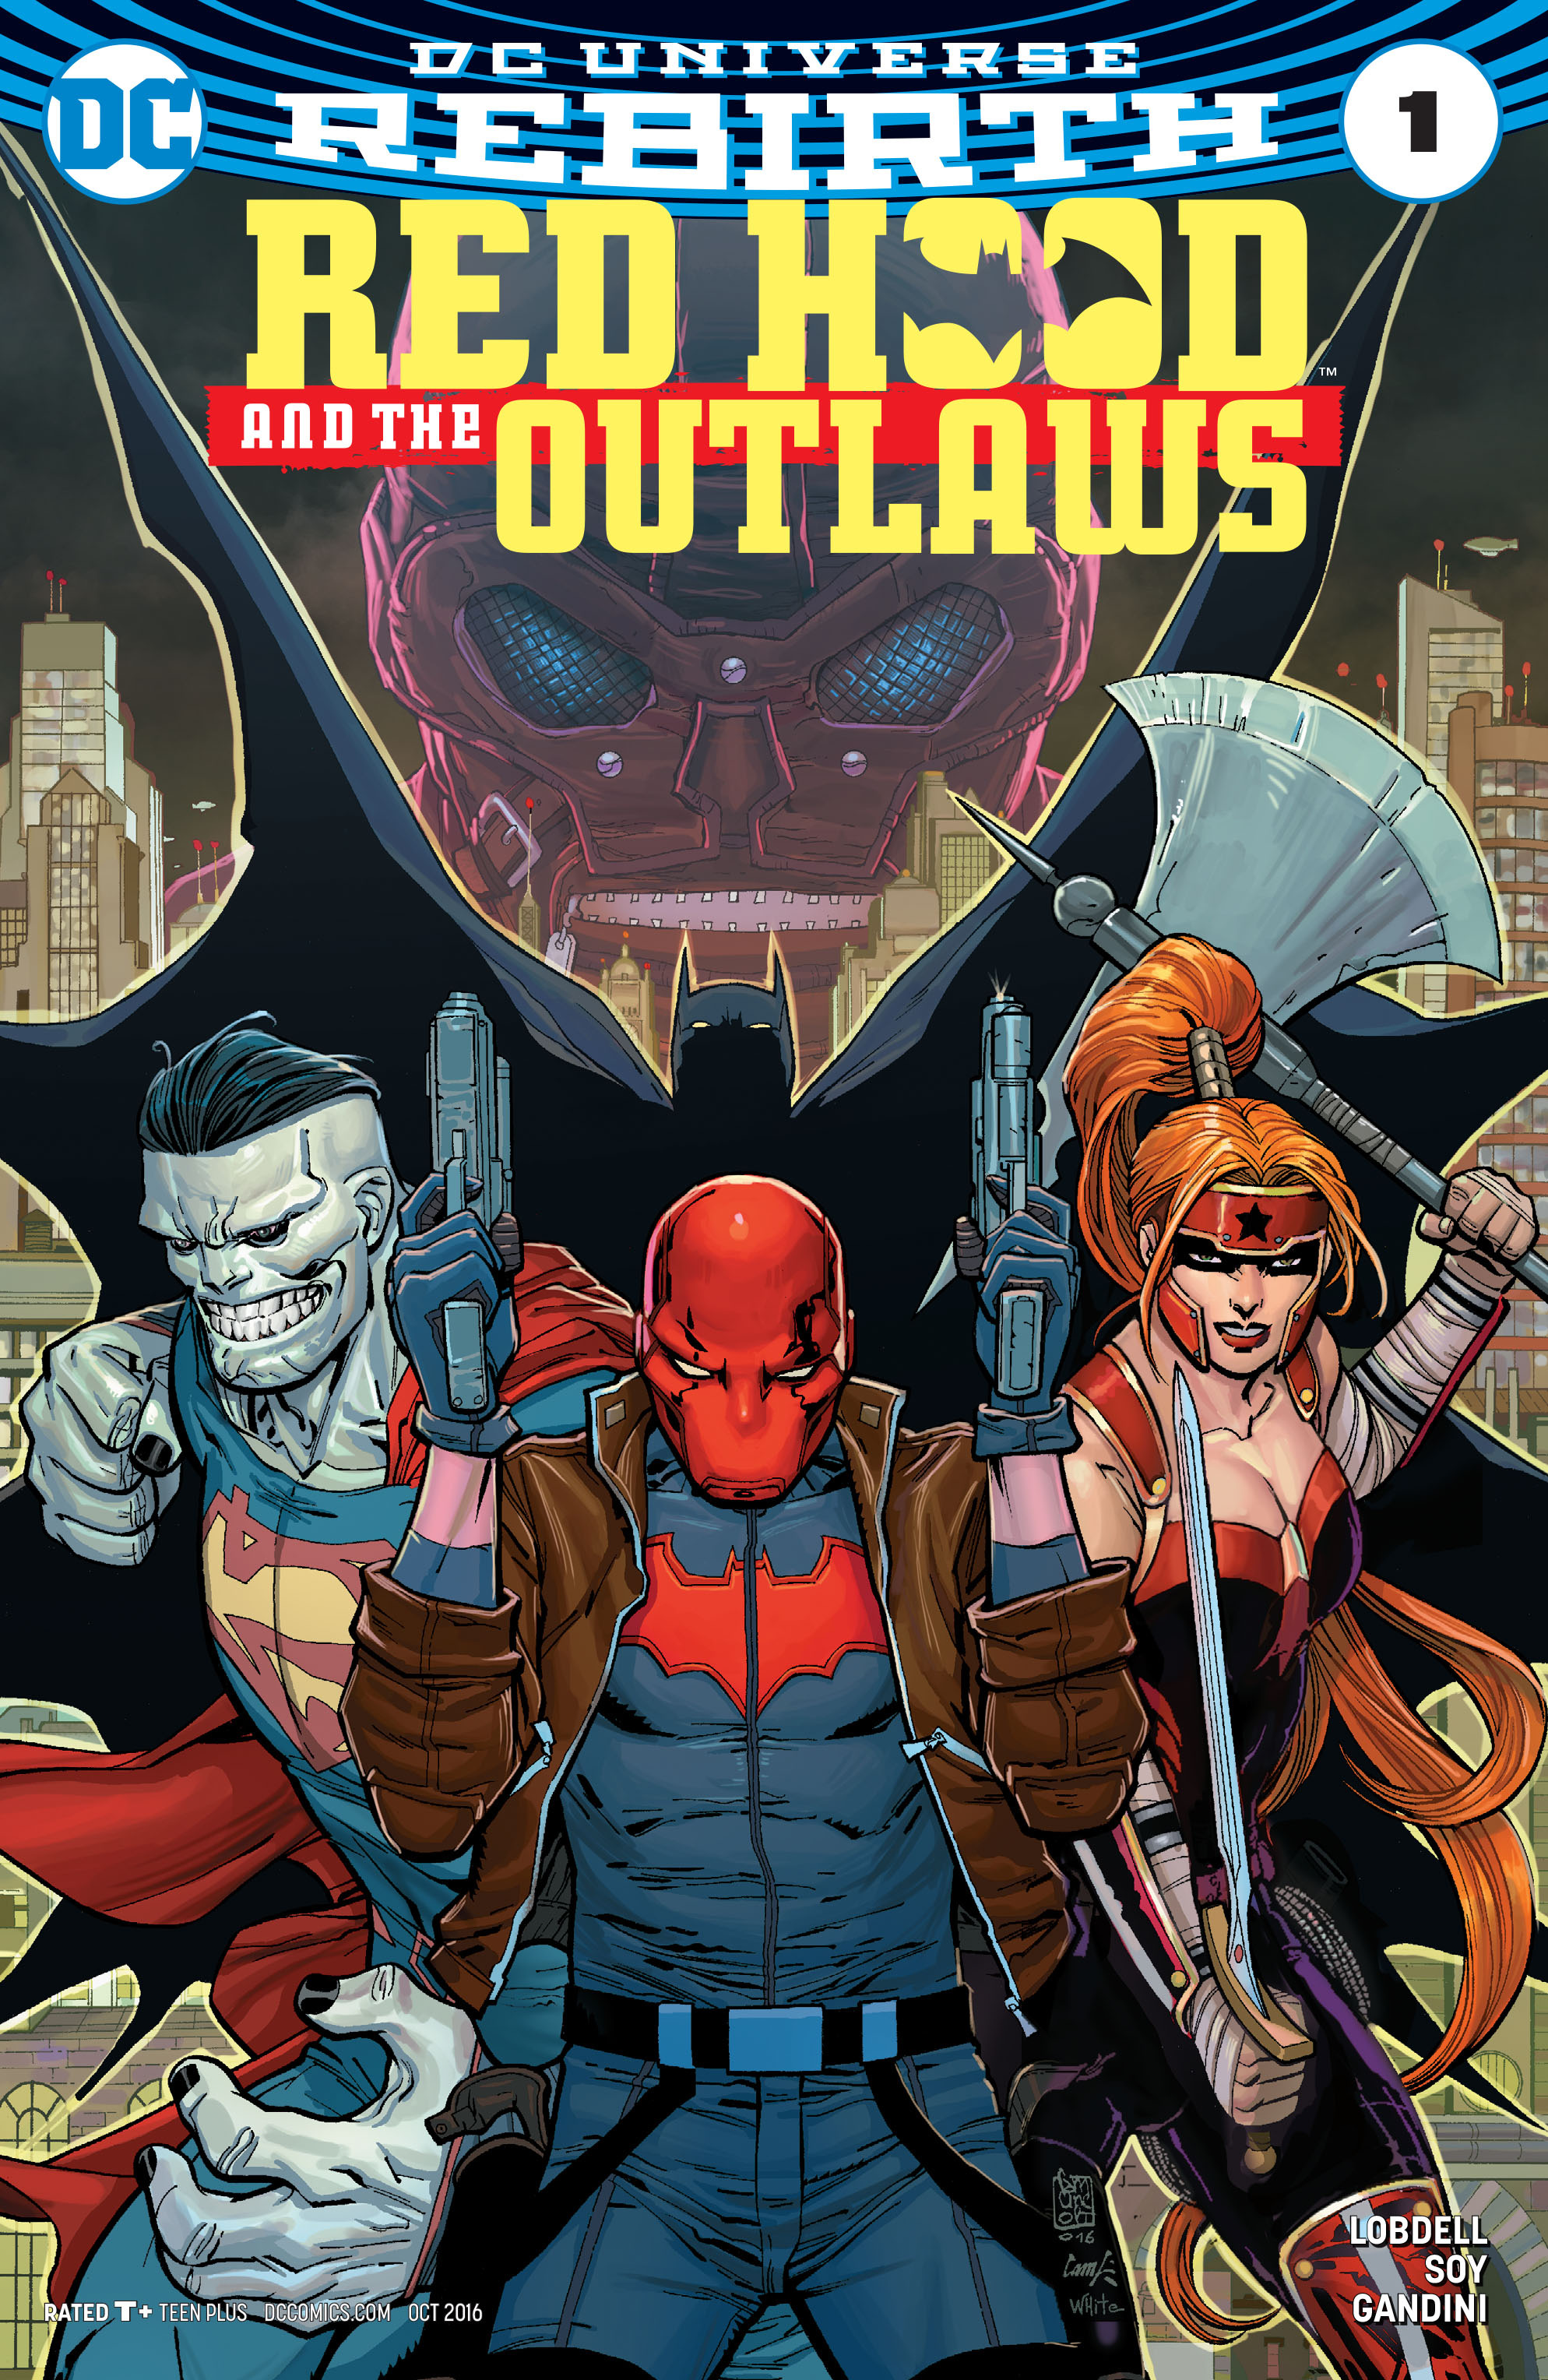 Red Hood and the Outlaws (2016) issue 1 - Page 1